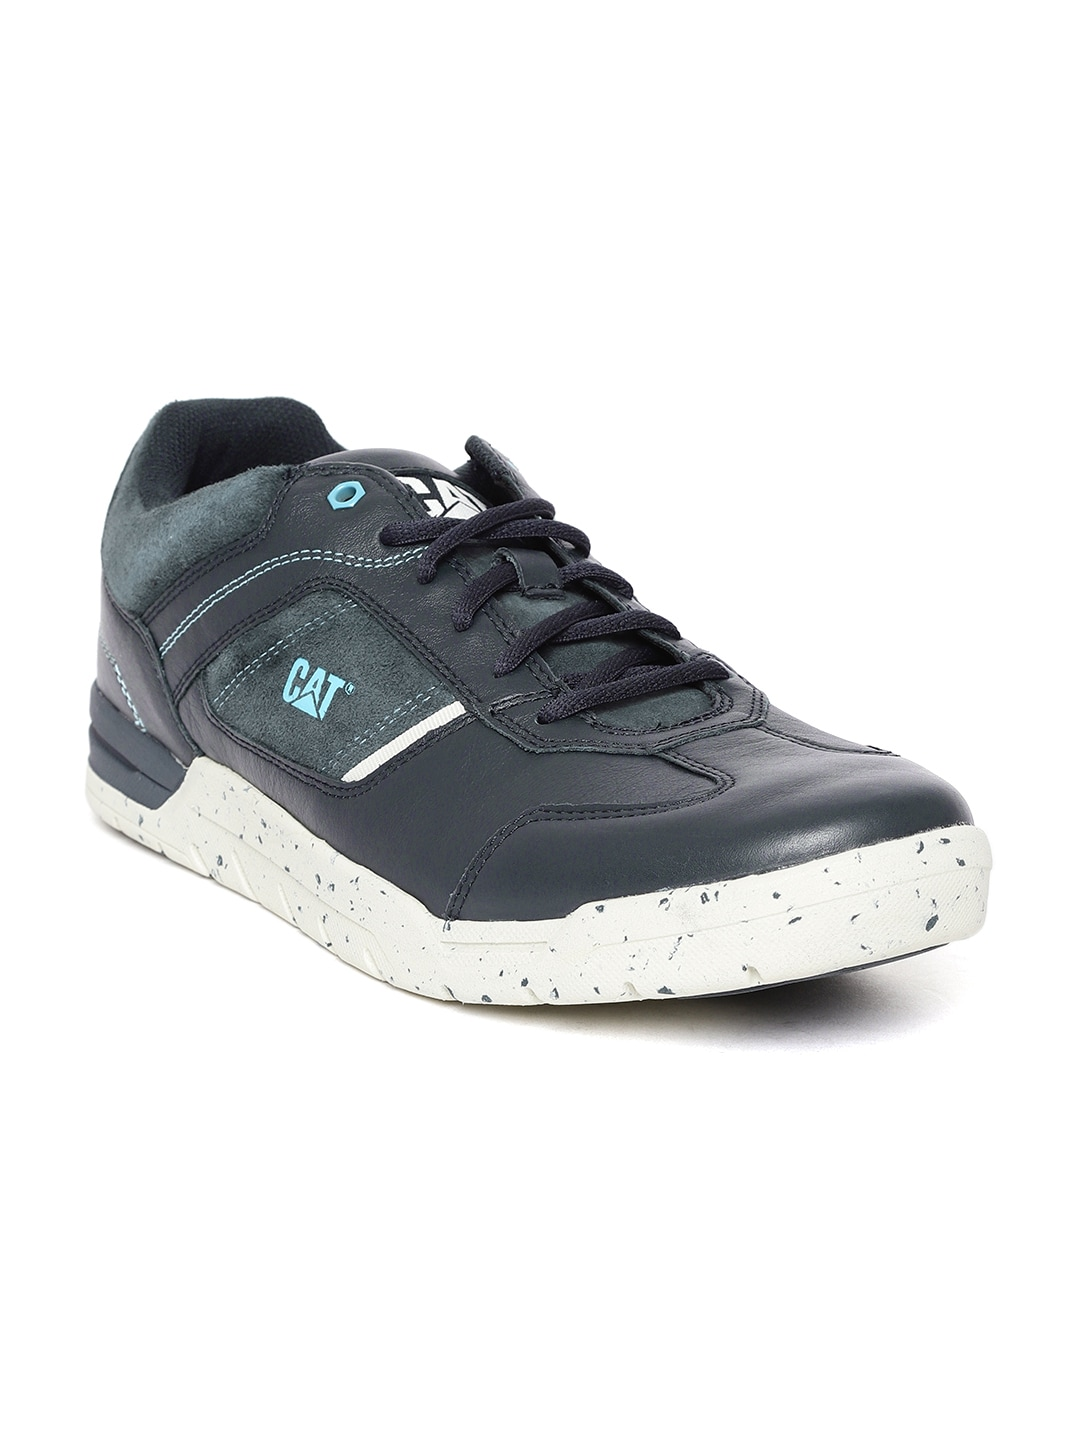 161c880f20f CAT Shoes - Buy CAT Shoes For Men at Best Price Online